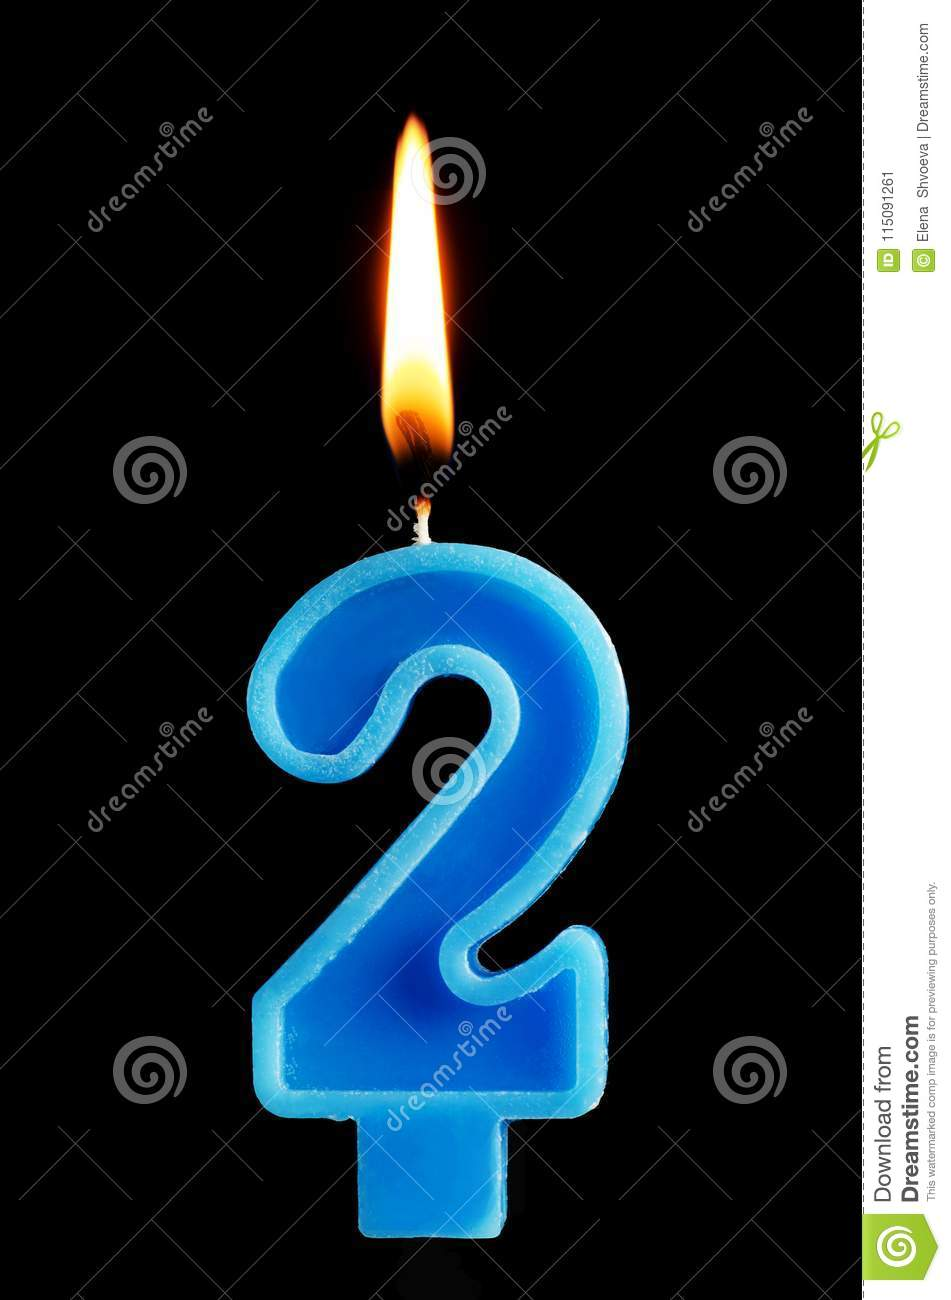 Burning birthday candle in the form of 2 two figures for cake isolated on black background. The concept of celebrating a birthday,